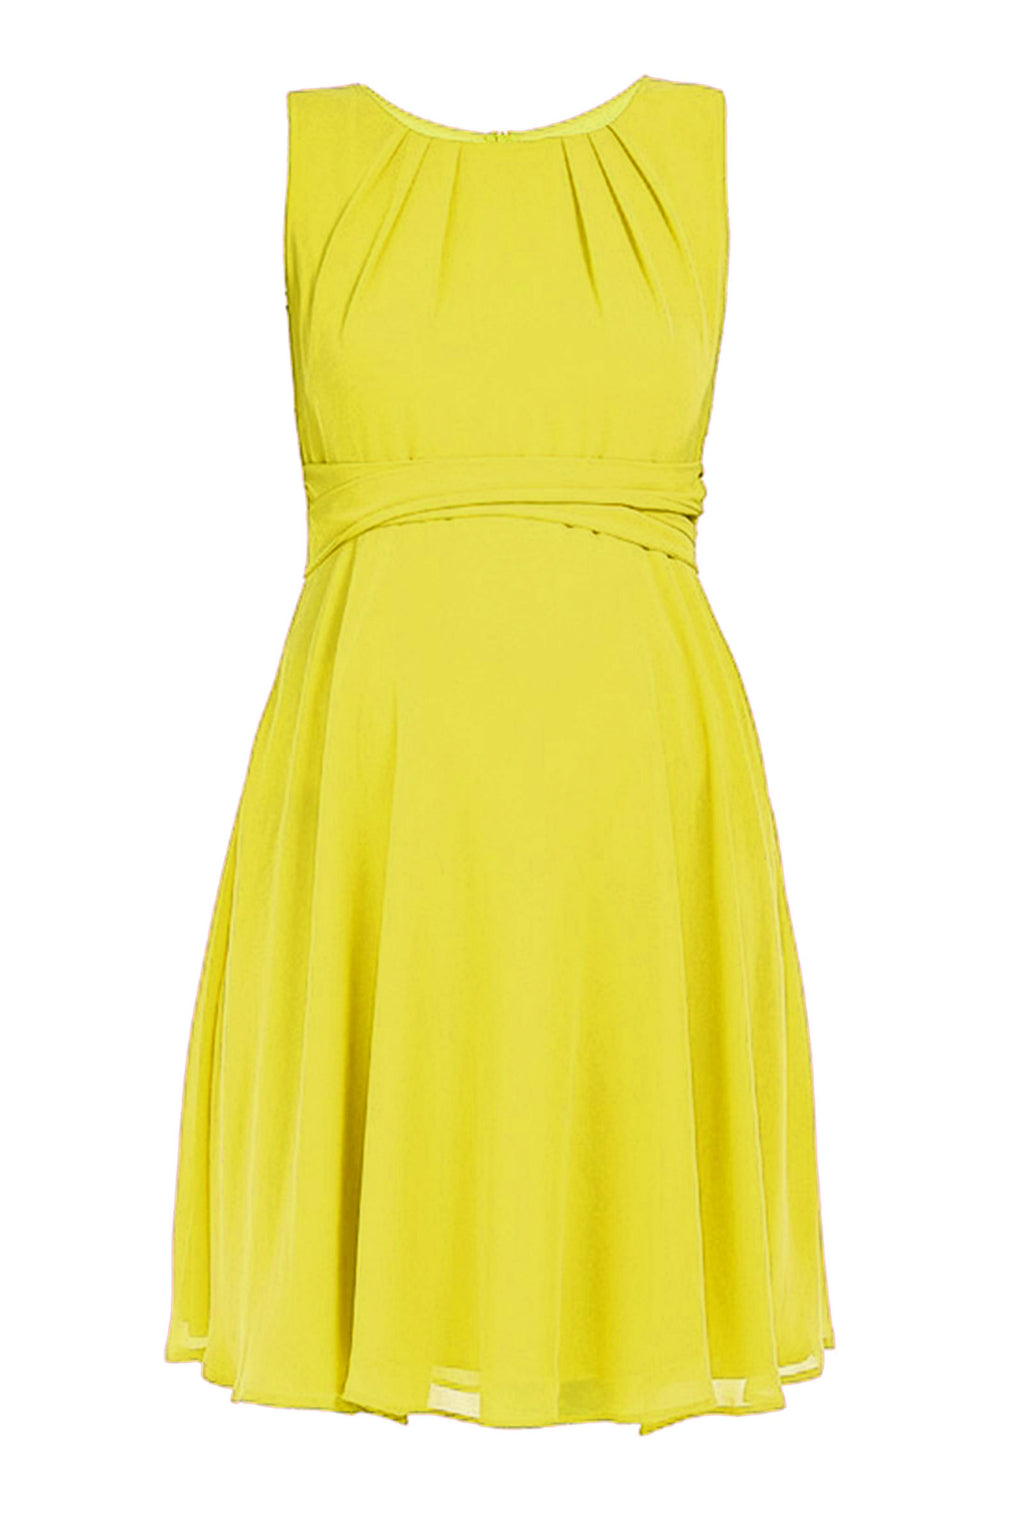 Pietro Brunelli  Isabella Chiffon Maternity Dress In Summer Yellow - Seven Women Maternity